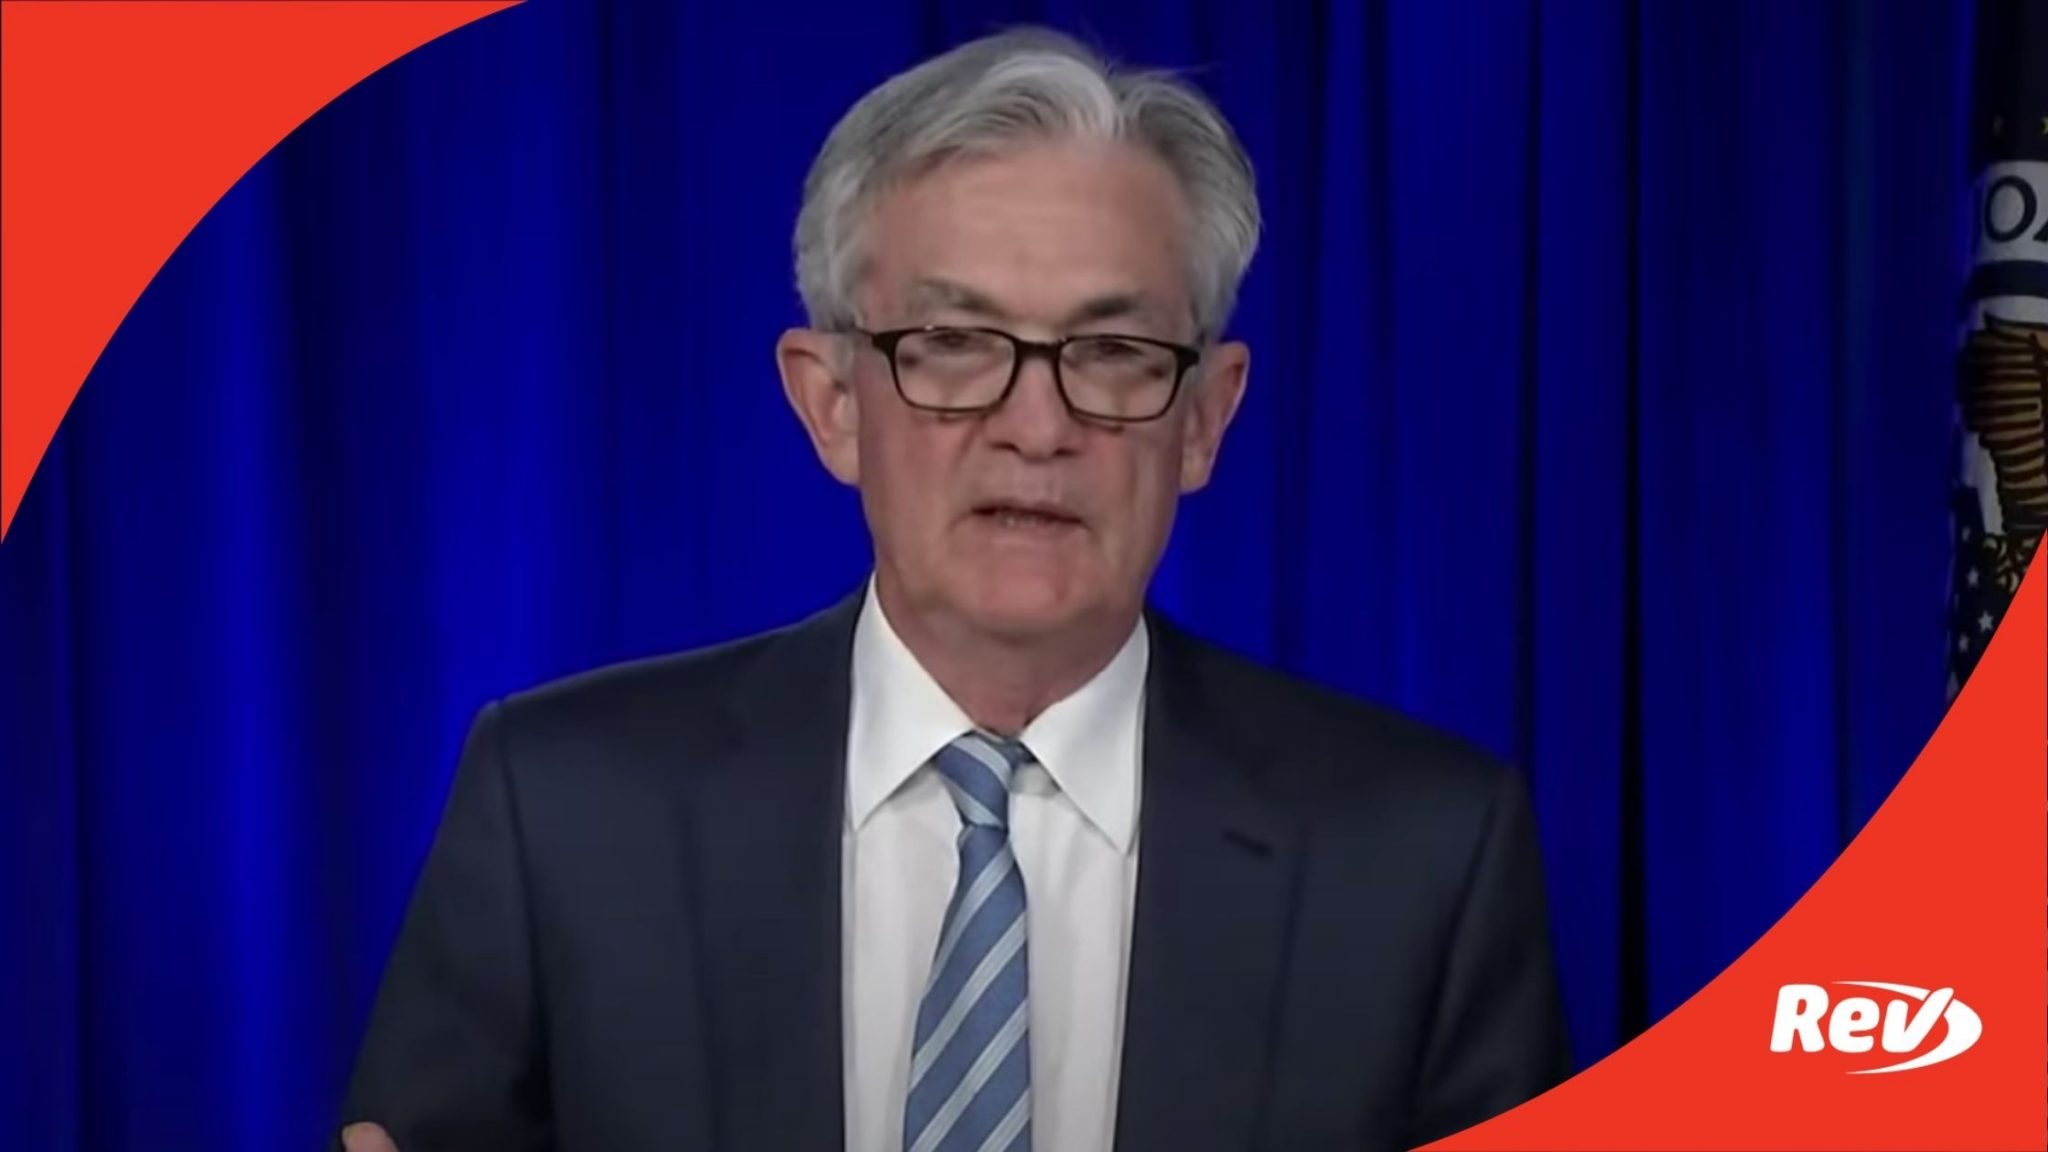 Fed Chair Jerome Powell Press Conference Transcript June 16: Market Update